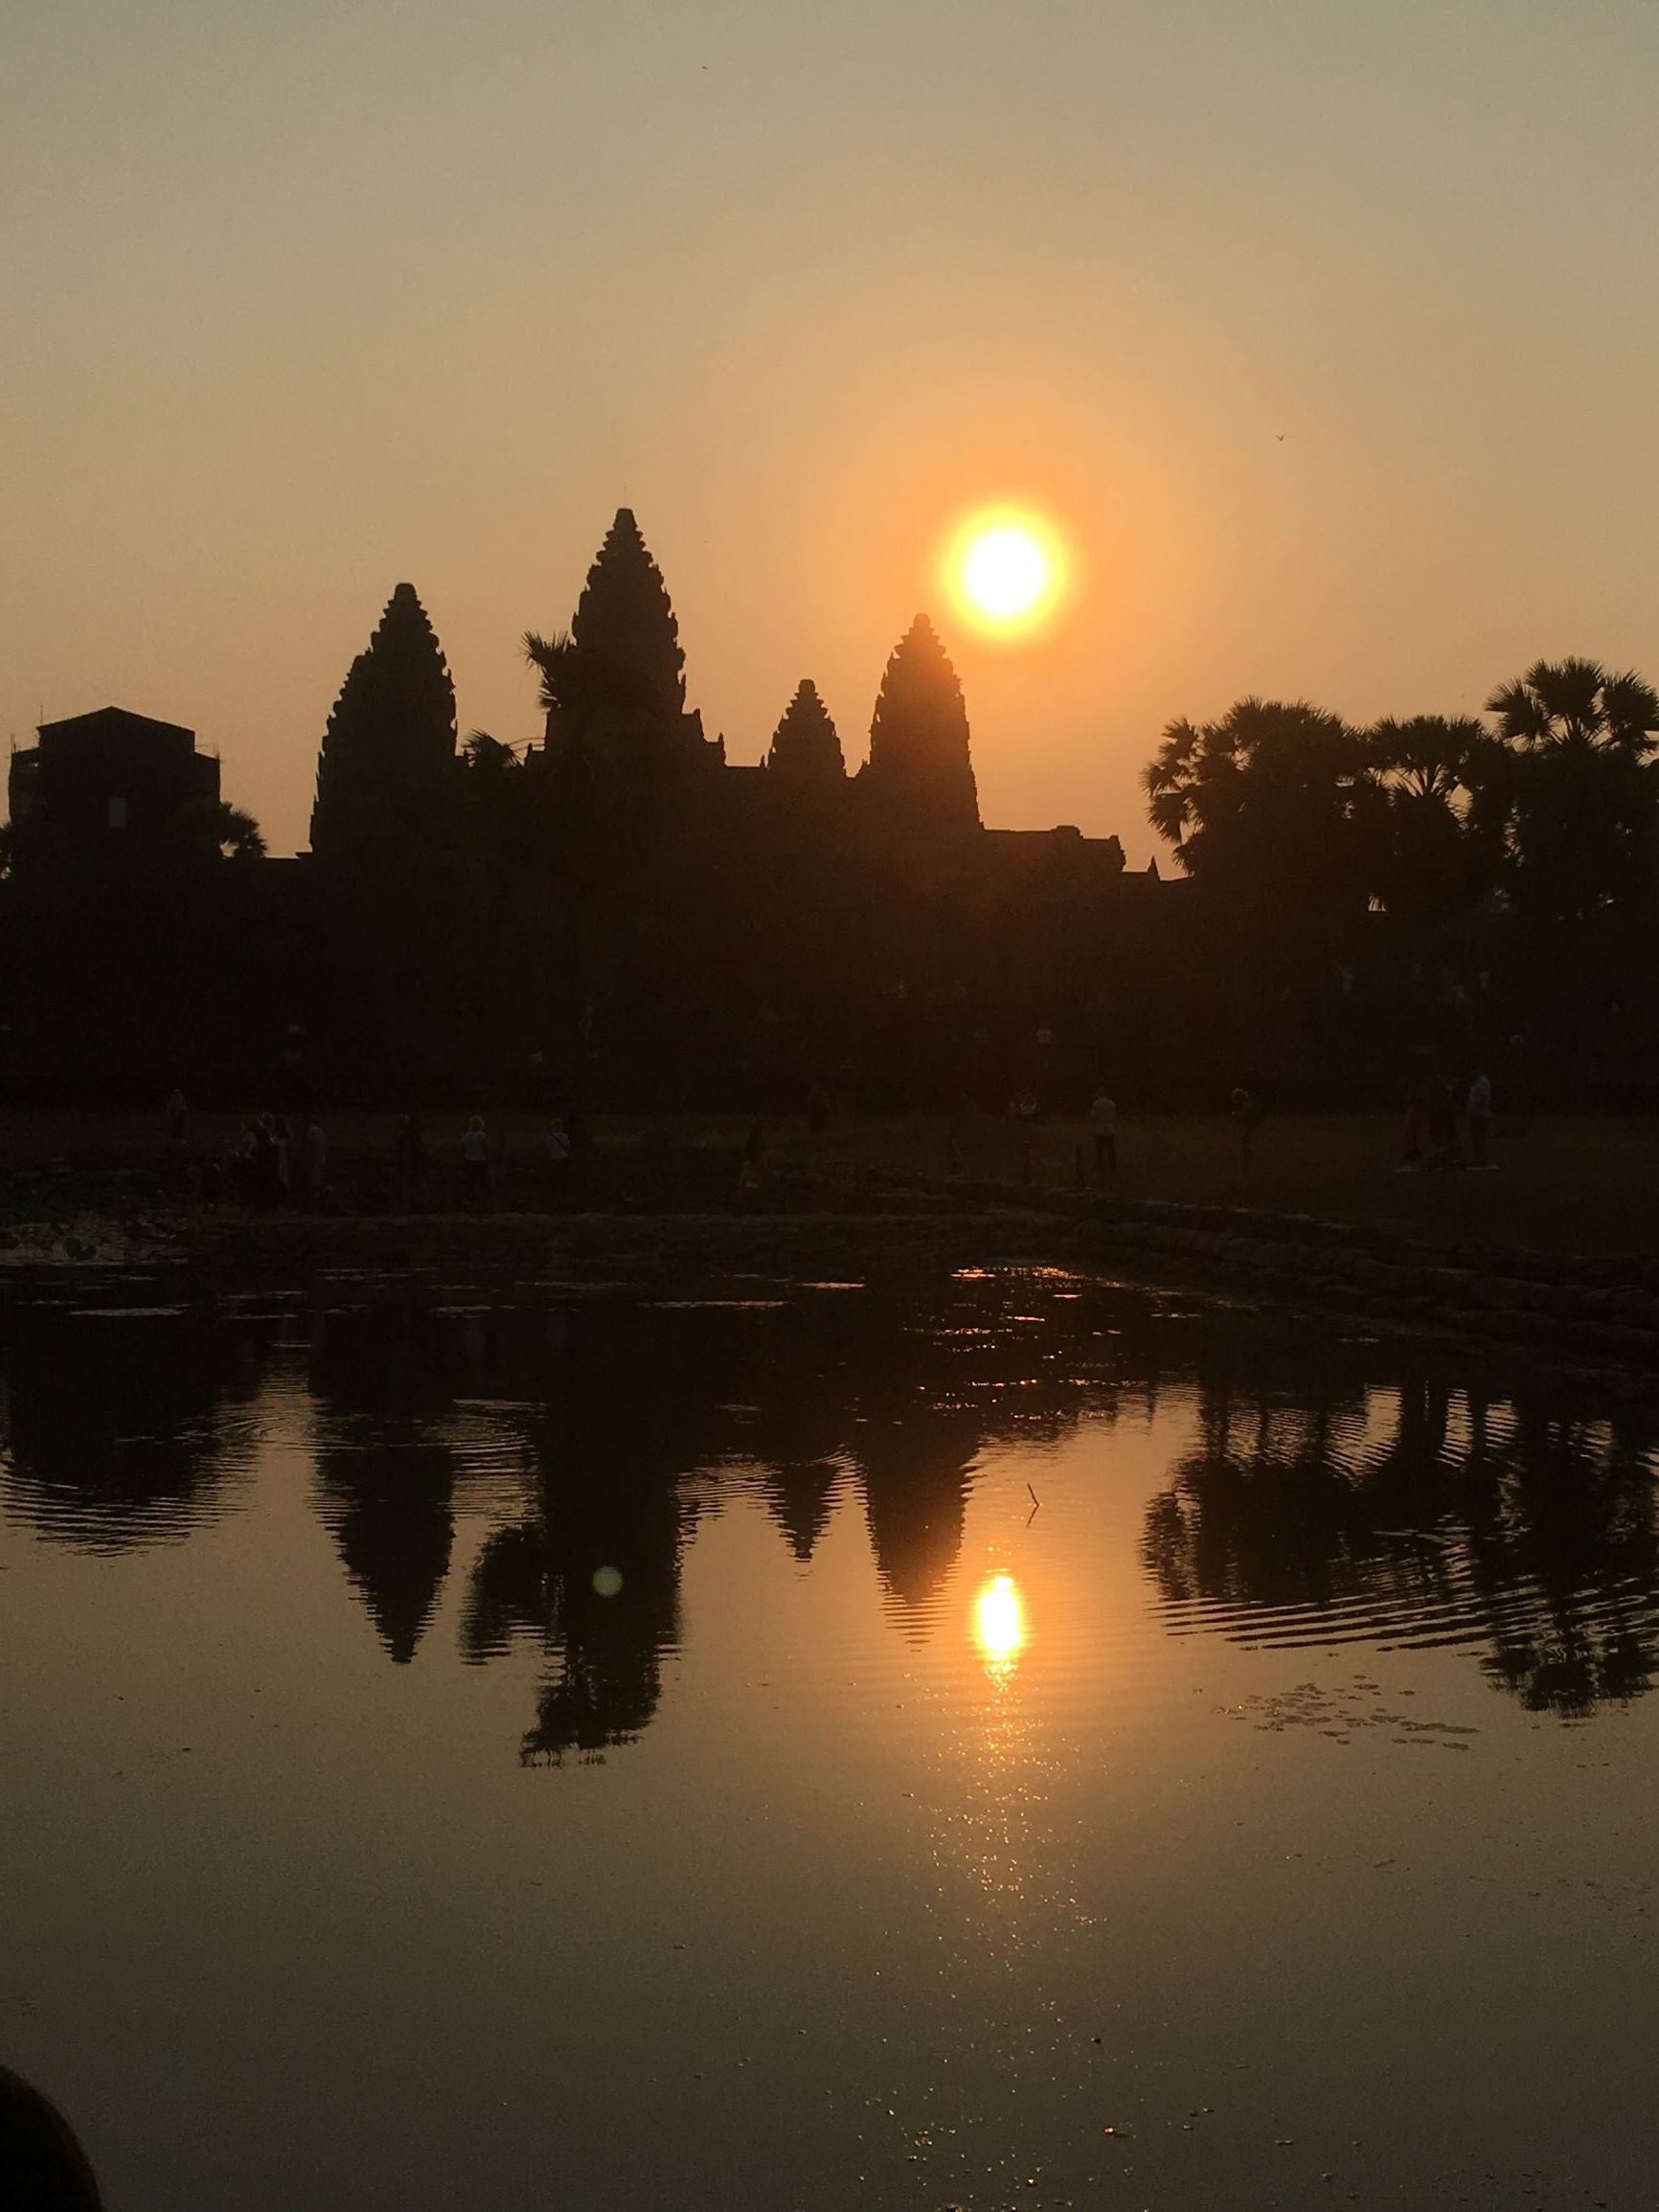 Explore Cambodia and its wonderful sights from your phone! Just click on the link in this pin to go to the amazing photo gallery from letsjoetravel ! #cambodia #siemreap #kampot #phnompenh #angkorwat #angkor #travelblog #wanderlust #sunrise #temple #southeastasia #asiatravel #travelphotography #photography #adventure